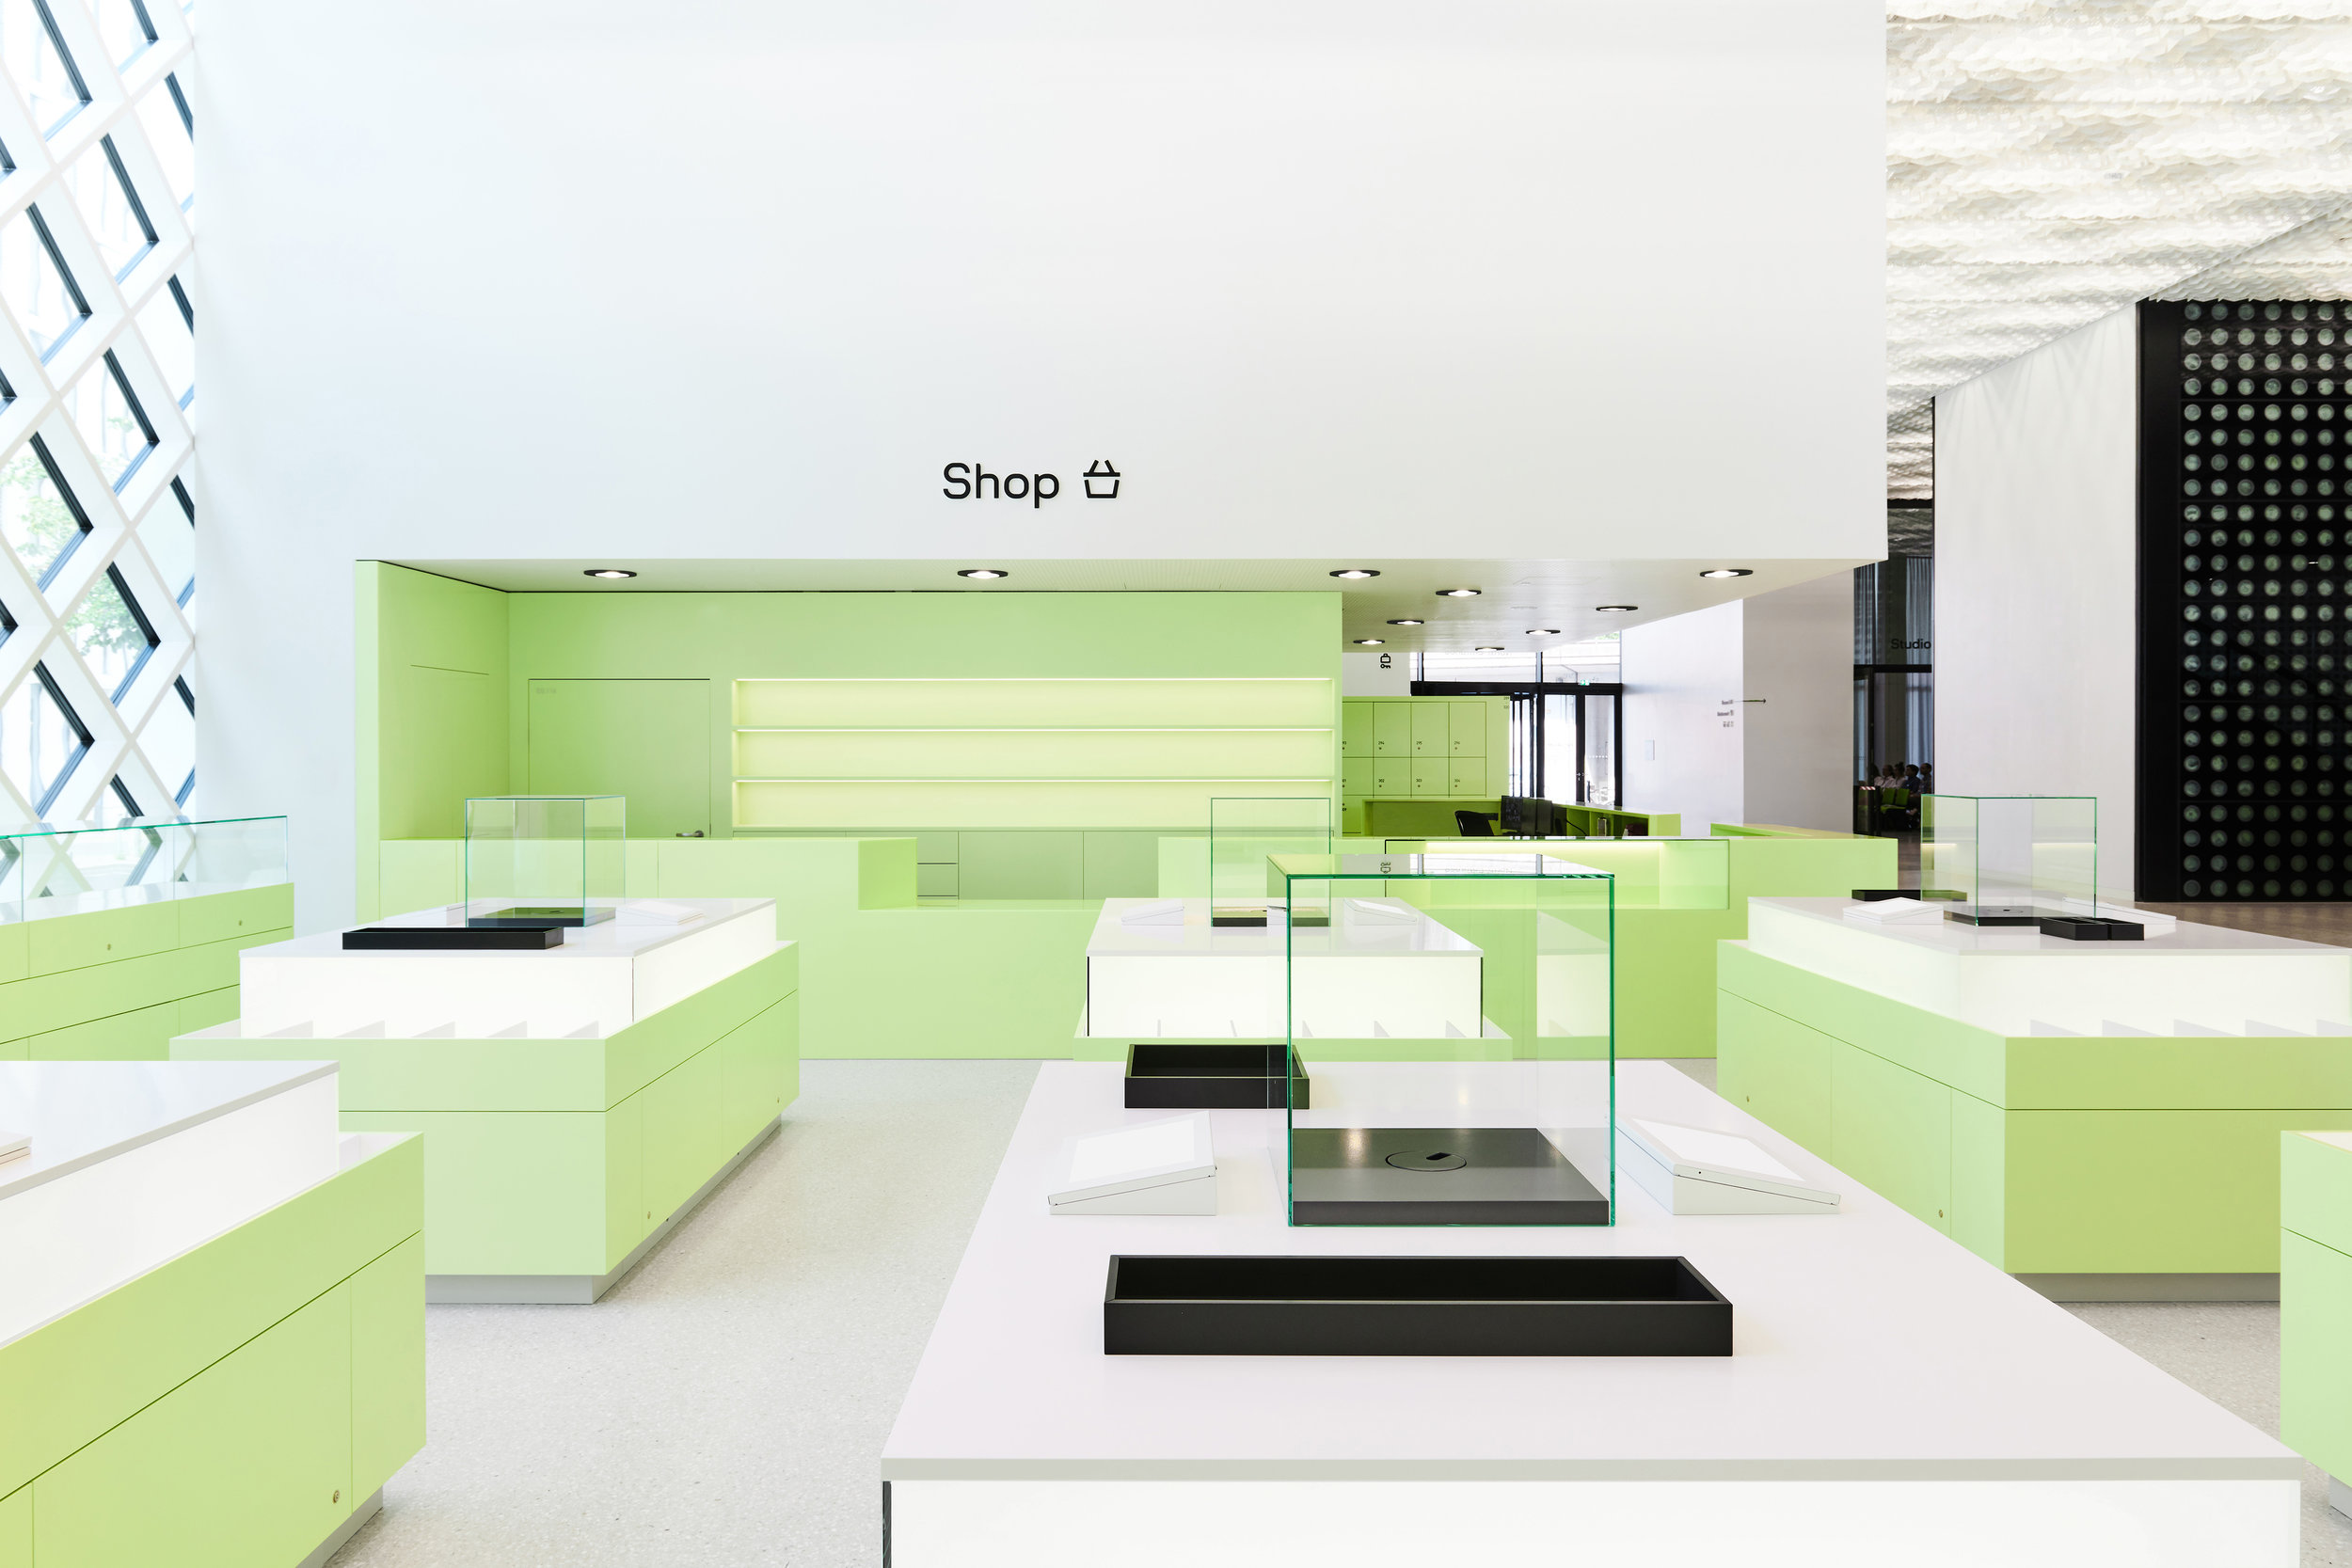 futurium_retail-interior-design_coordination-berlin-02.jpg